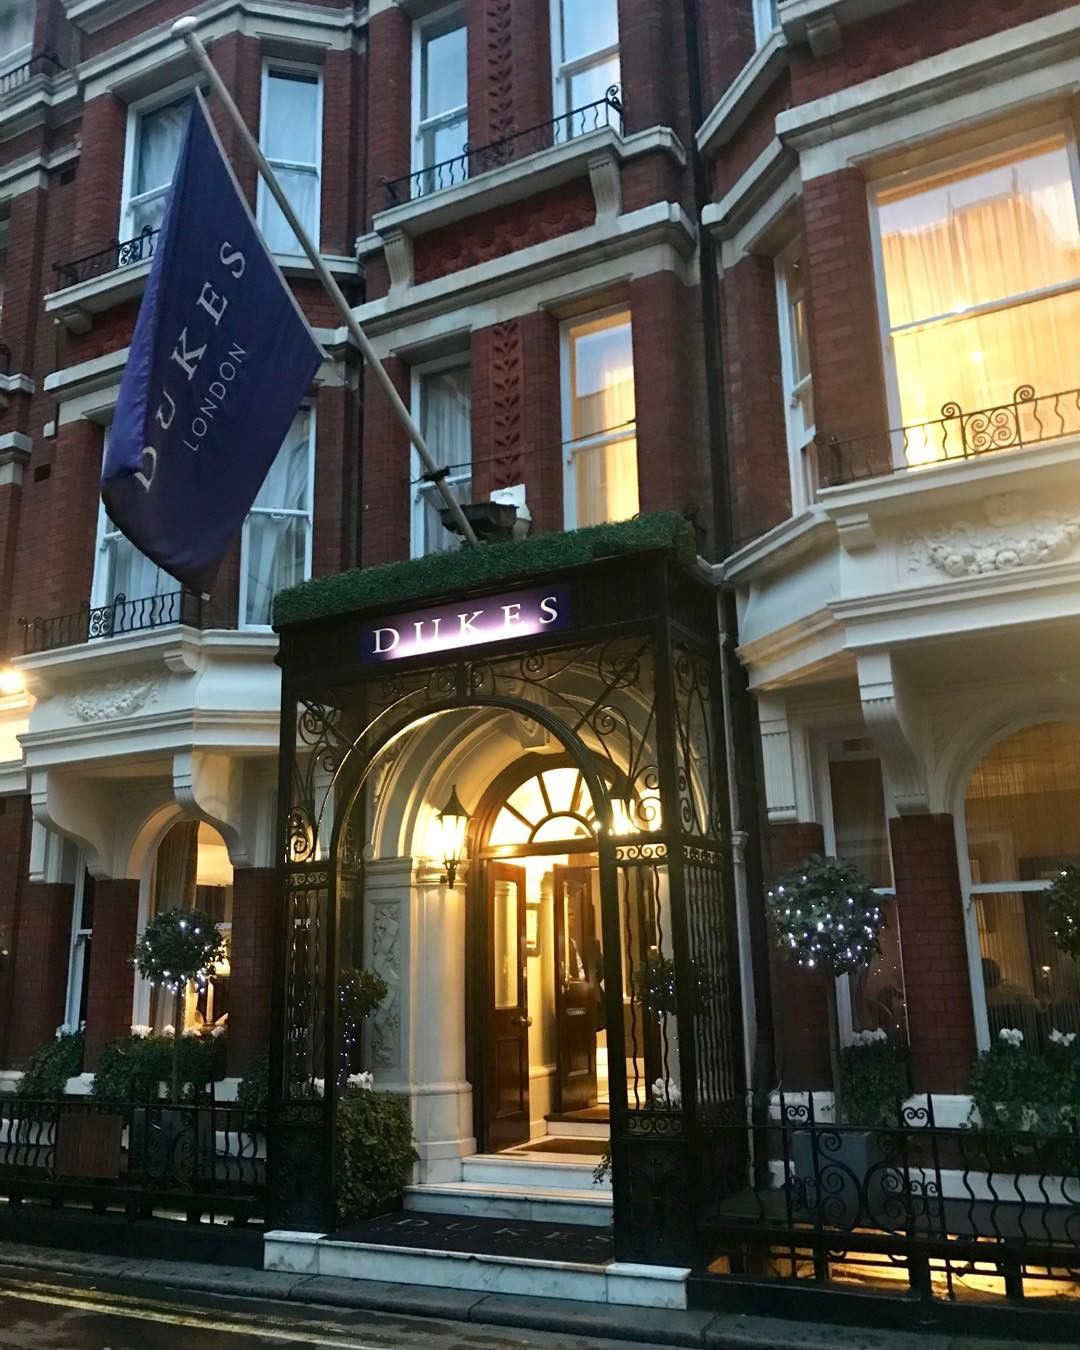 #Now #dukeshotel #london #bestmartinintown grand hotel an...